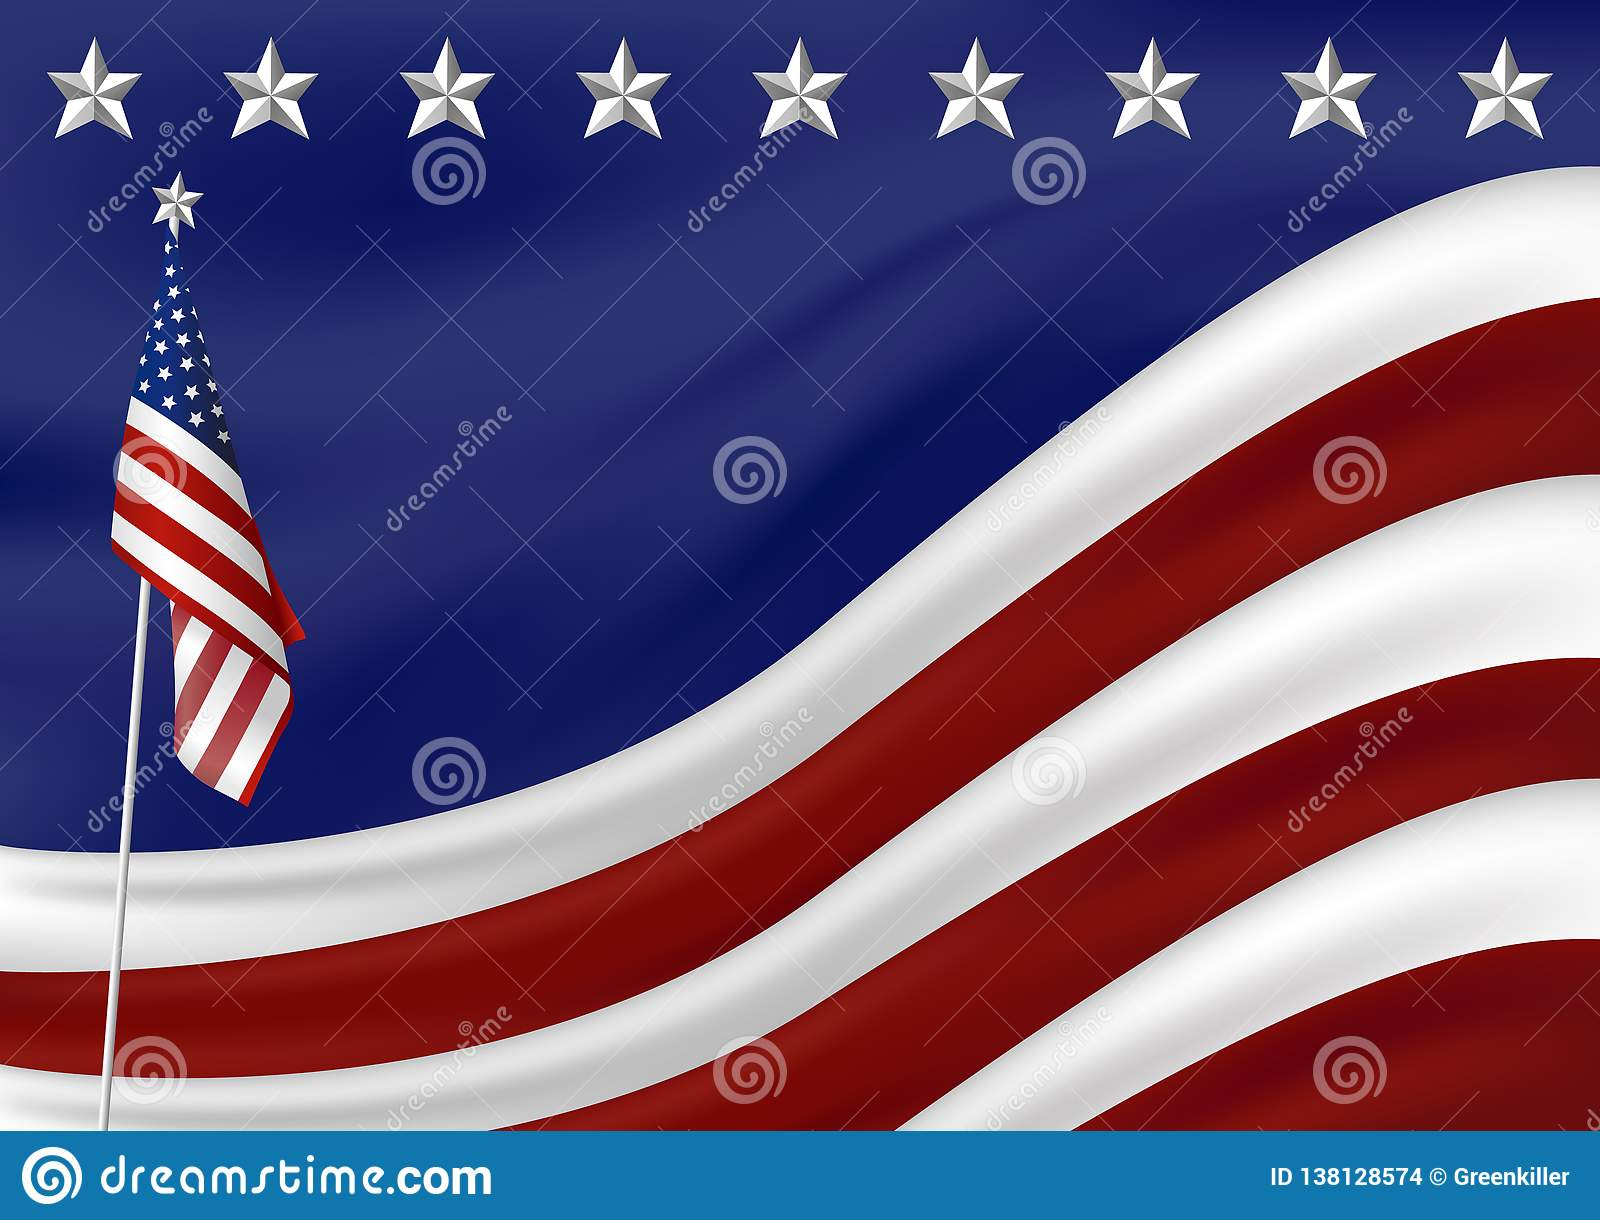 American flag background for presidents 4th july independence day vector illustration